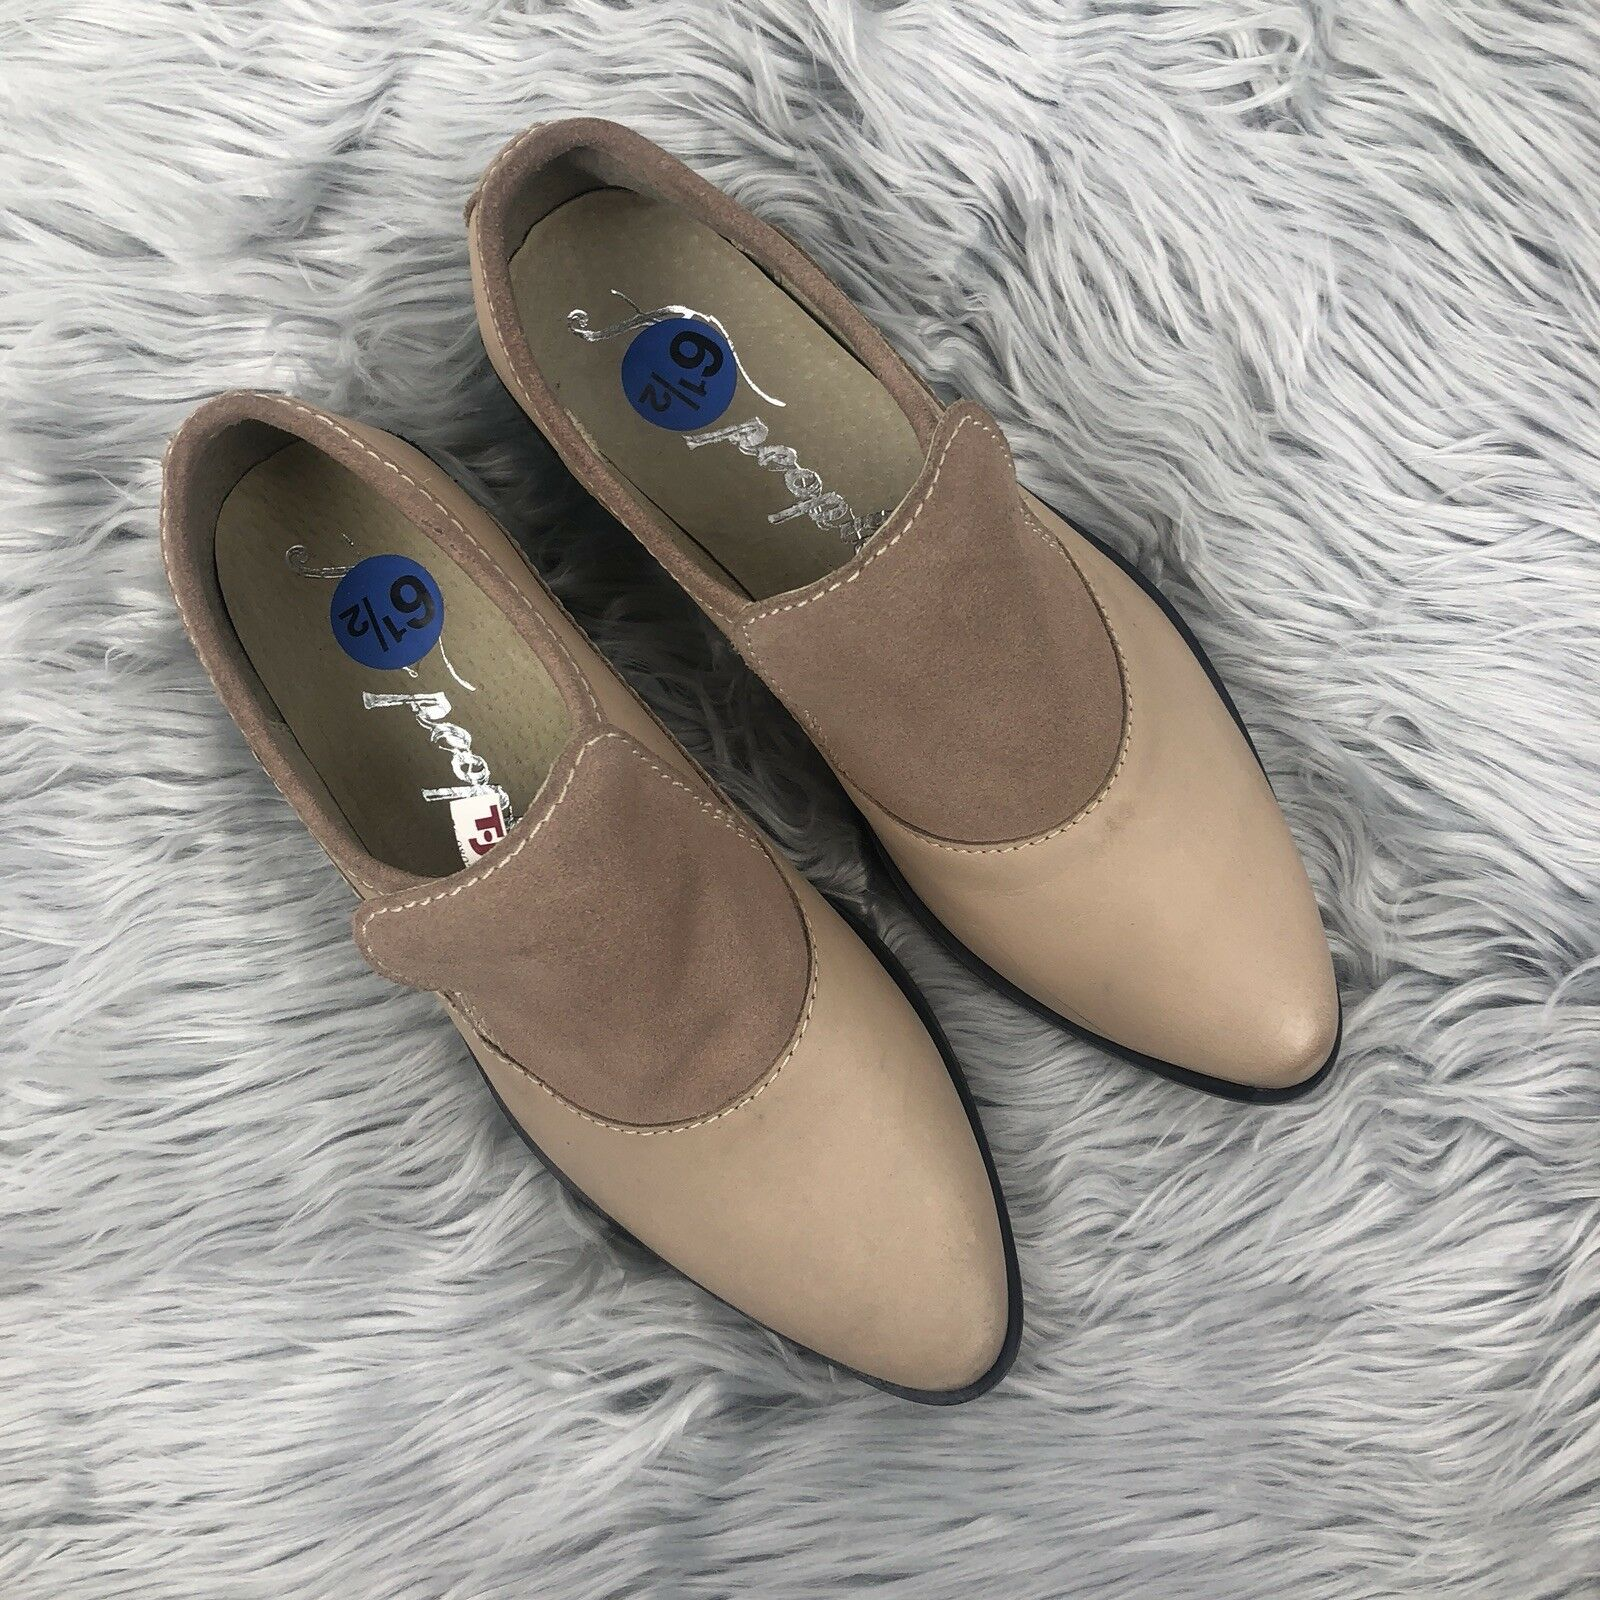 Free People Brady Loafers Lather Flats shoes,  Size 6.5 Womens Size 37